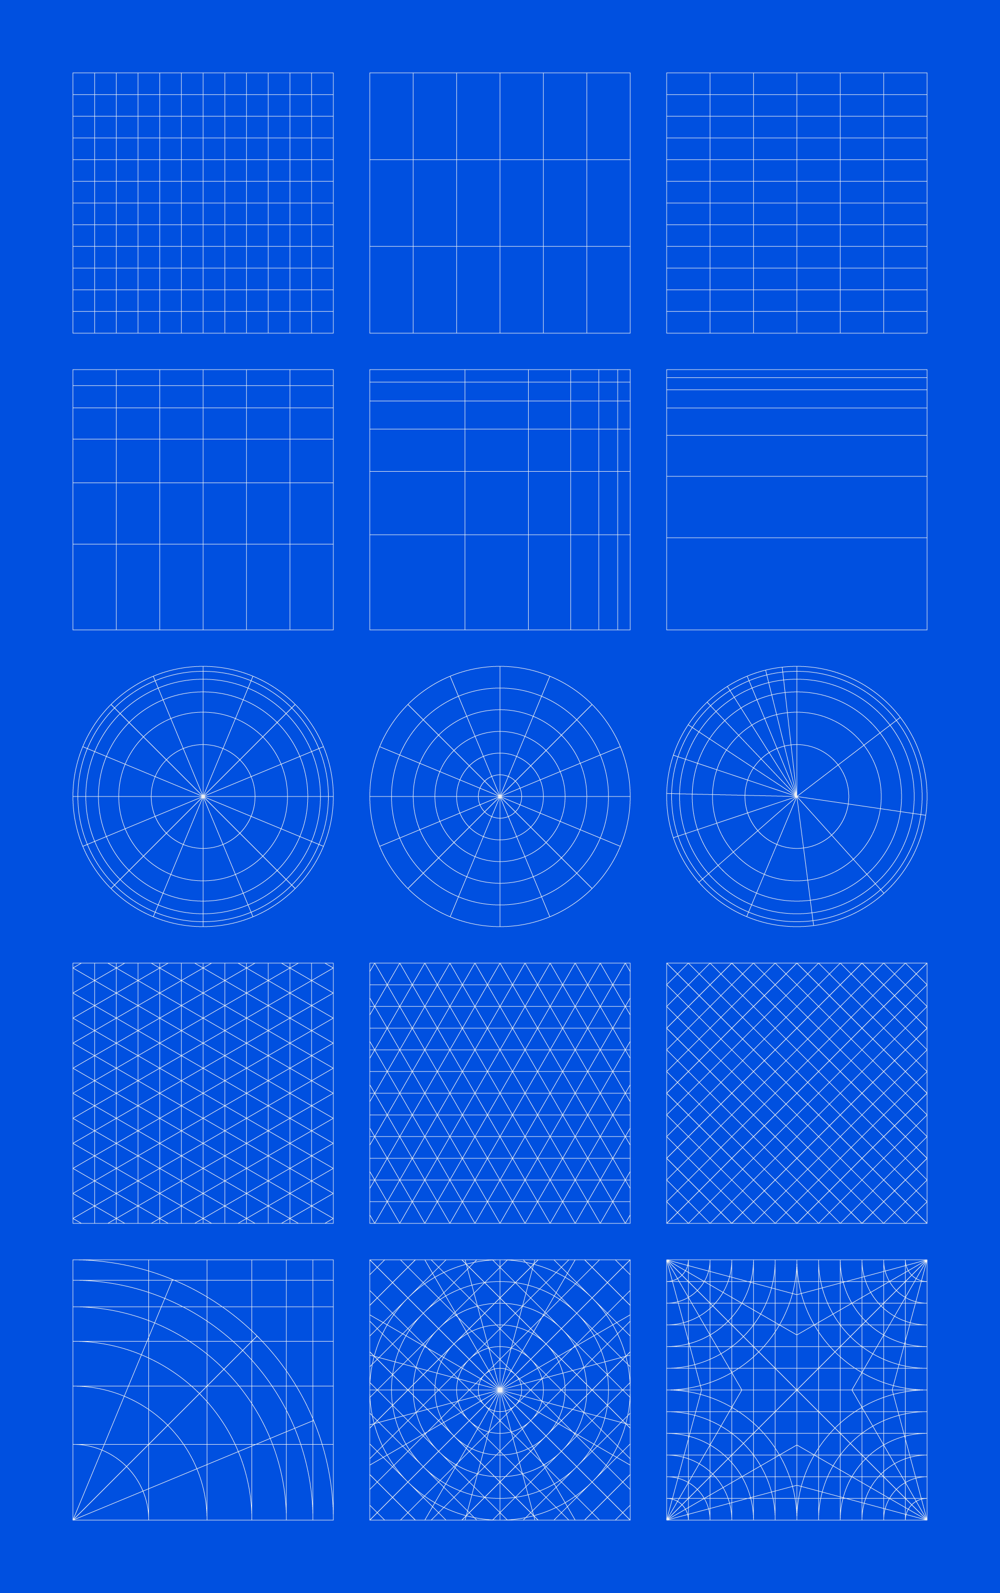 Geometric Grid-Based Designs - image 1 - student project